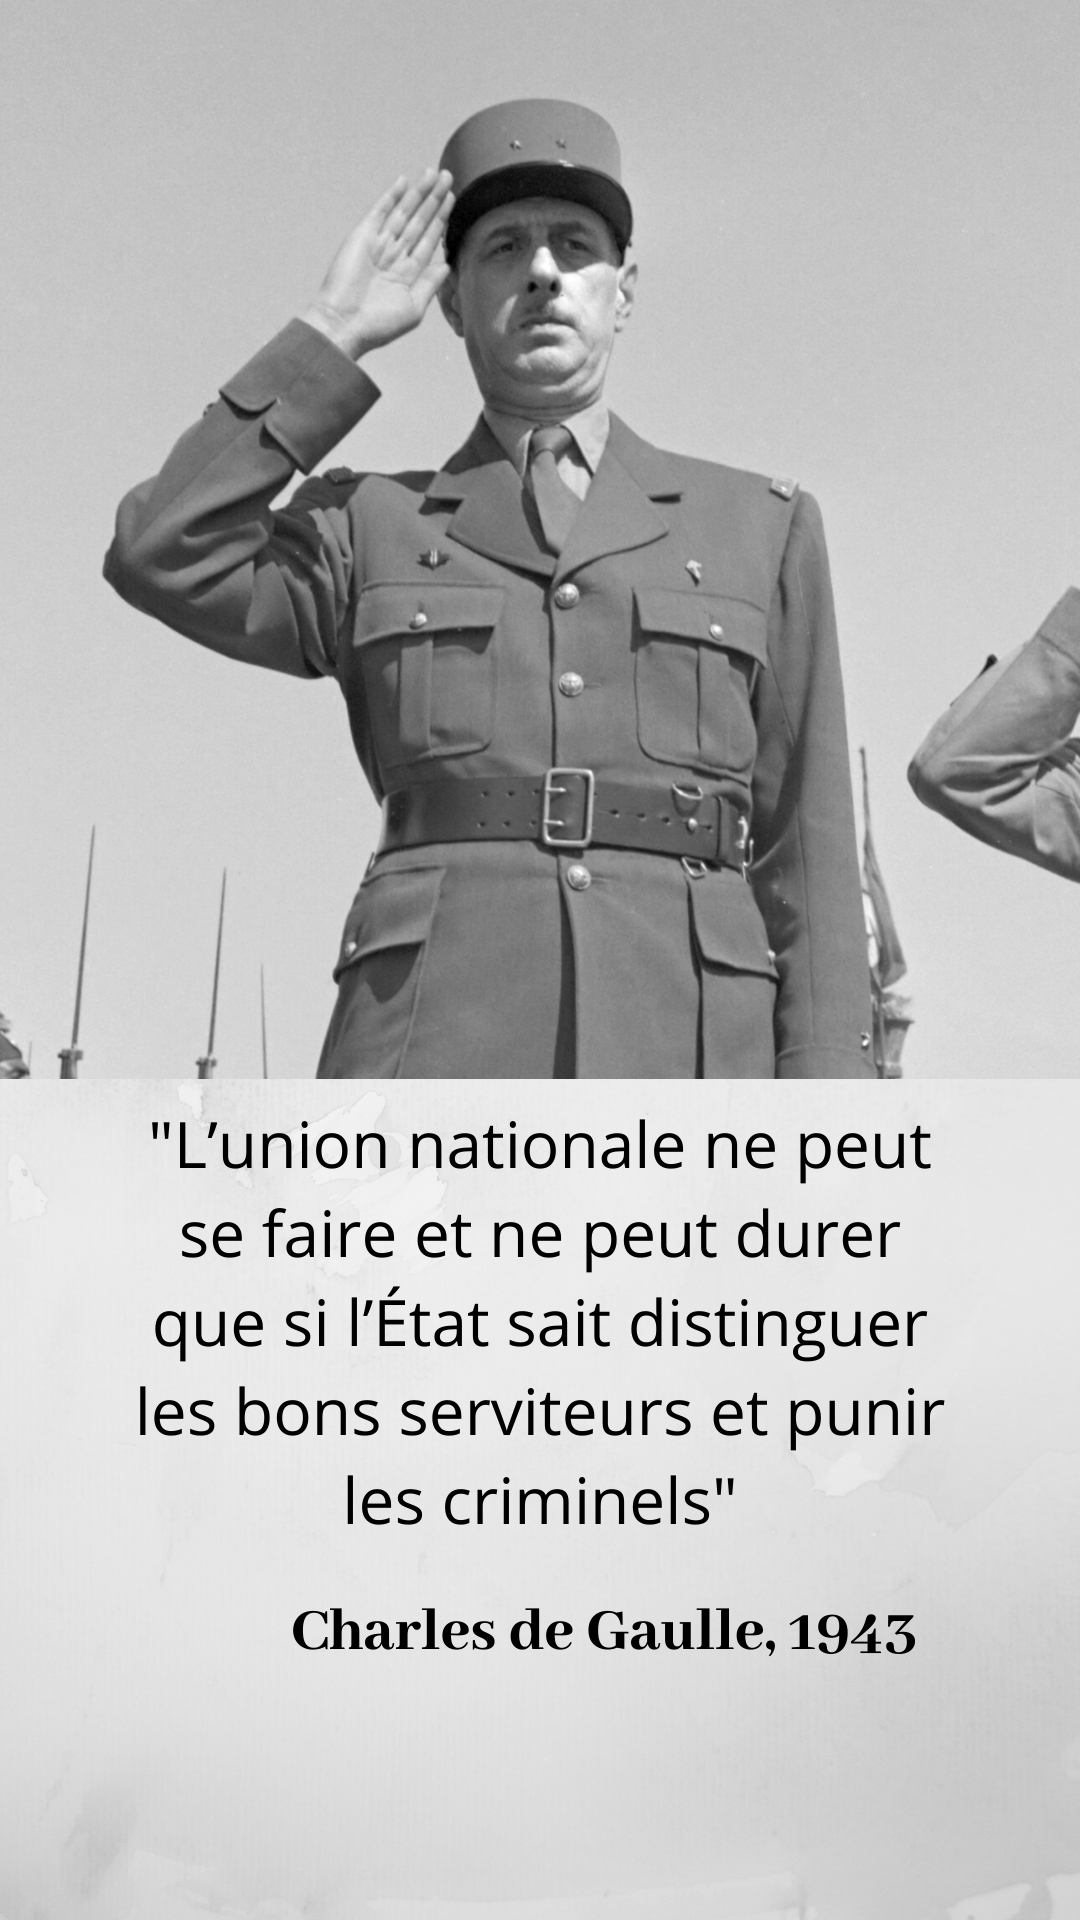 Epingle Sur La Seconde Guerre Mondiale En Citations